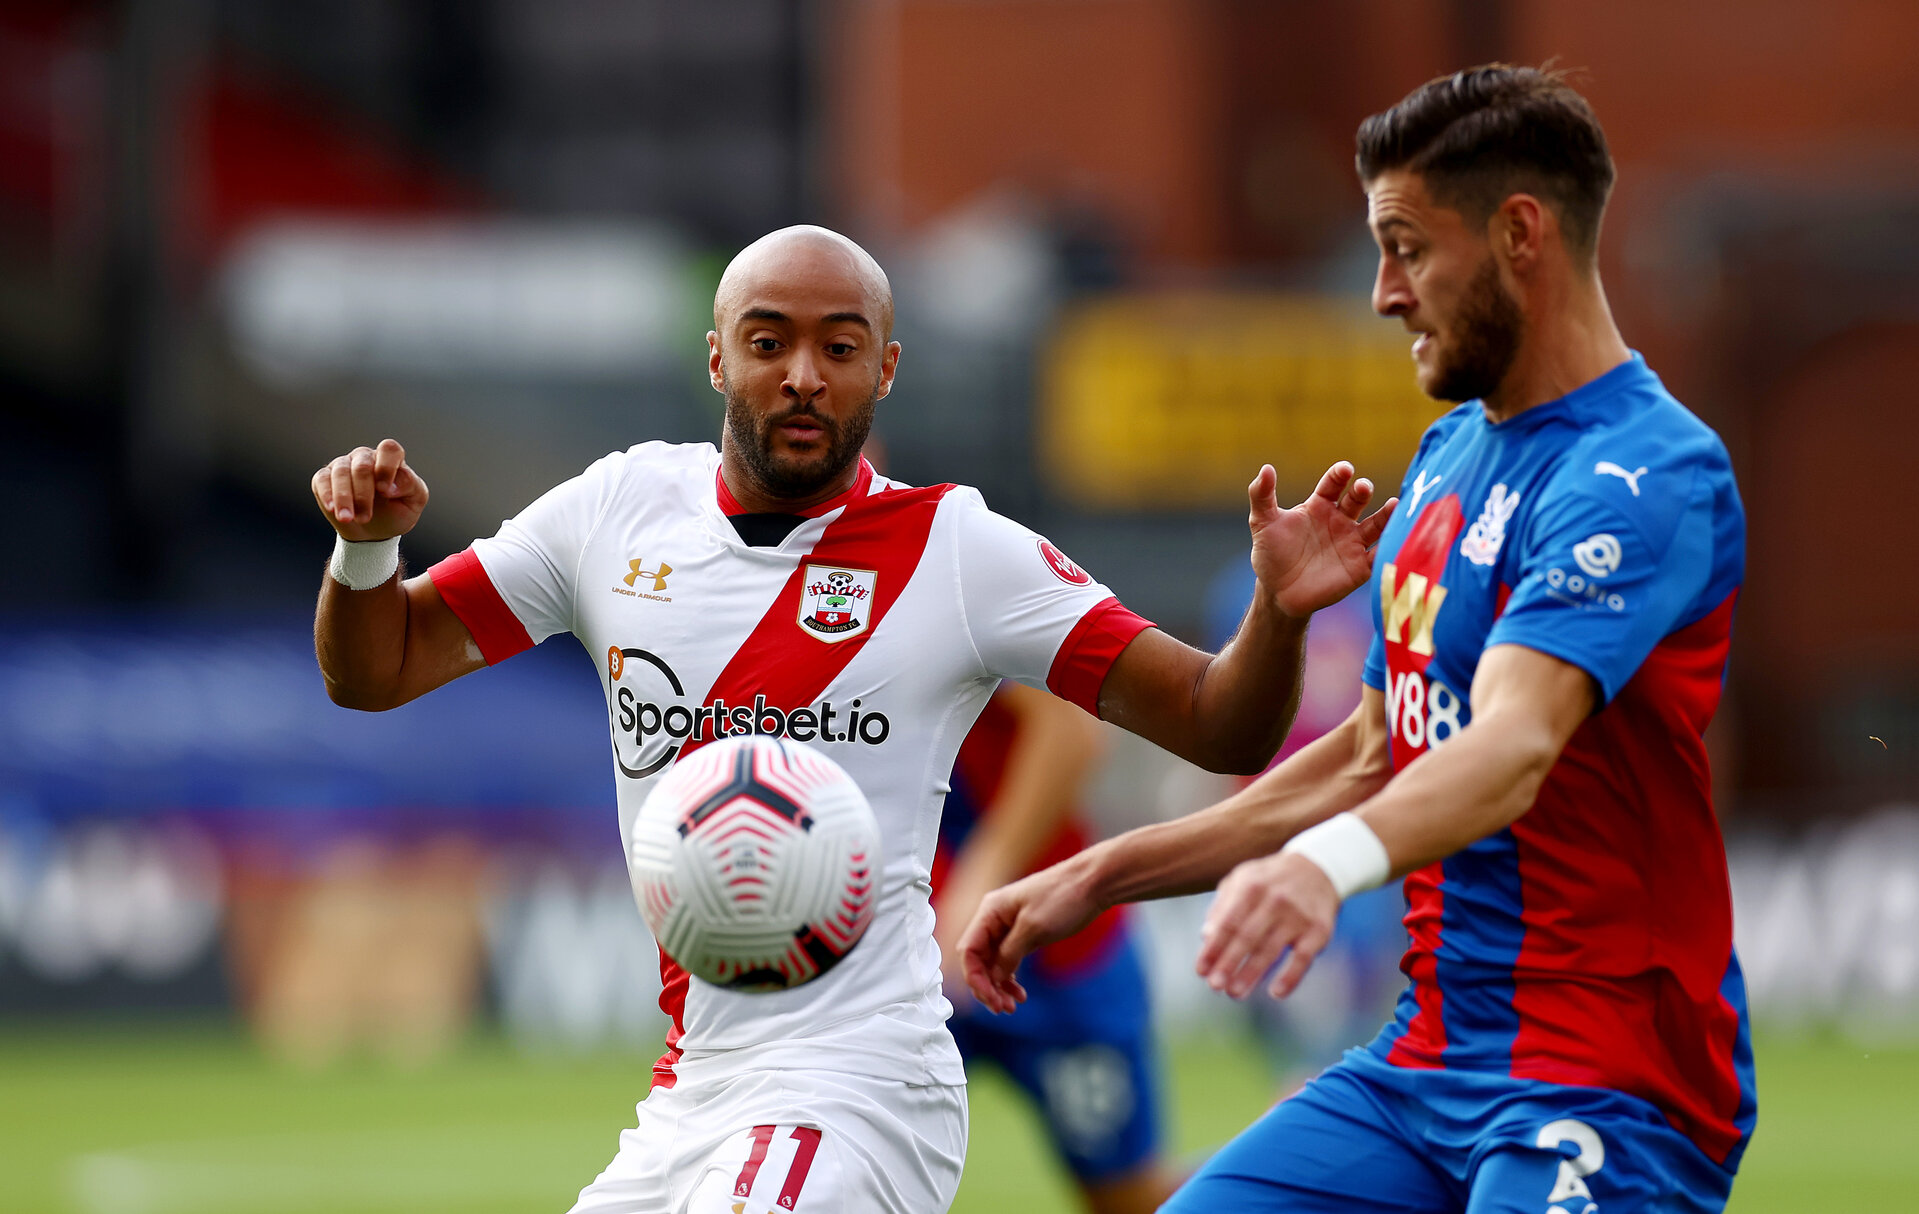 LONDON, ENGLAND - SEPTEMBER 12: Nathan Redmond(L) of Southampton and Joel Ward(R) of Crystal Palace during the Premier League match between Crystal Palace and Southampton at Selhurst Park on September 12, 2020 in London, United Kingdom. (Photo by Matt Watson/Southampton FC via Getty Images)